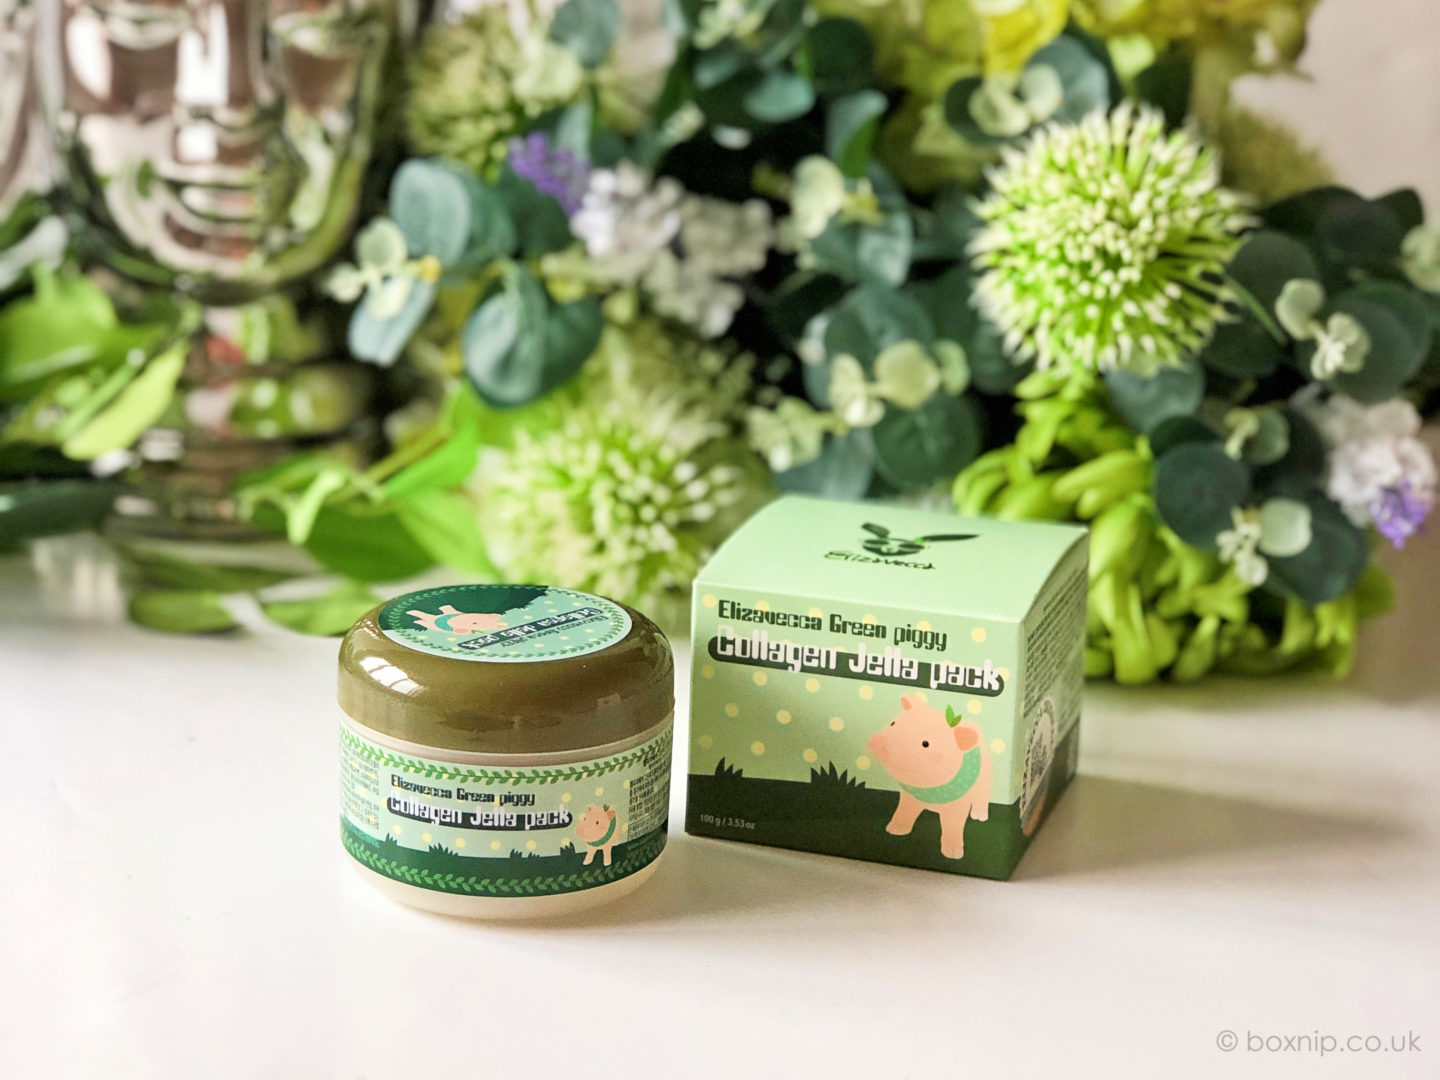 Elizavecca Green Piggy Collagen Jella Pack